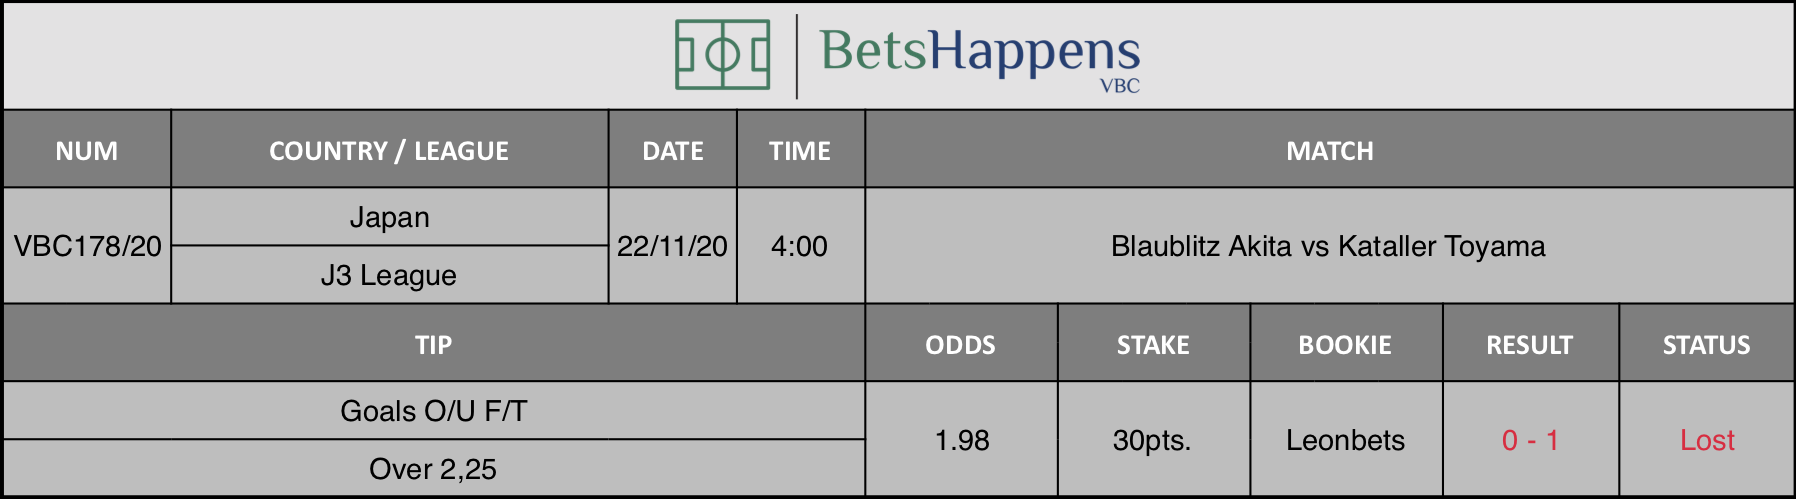 Results of our tip for the Blaublitz Akita vs Kataller Toyama match where Goals O/U F/T Over 2,25 is recommended.